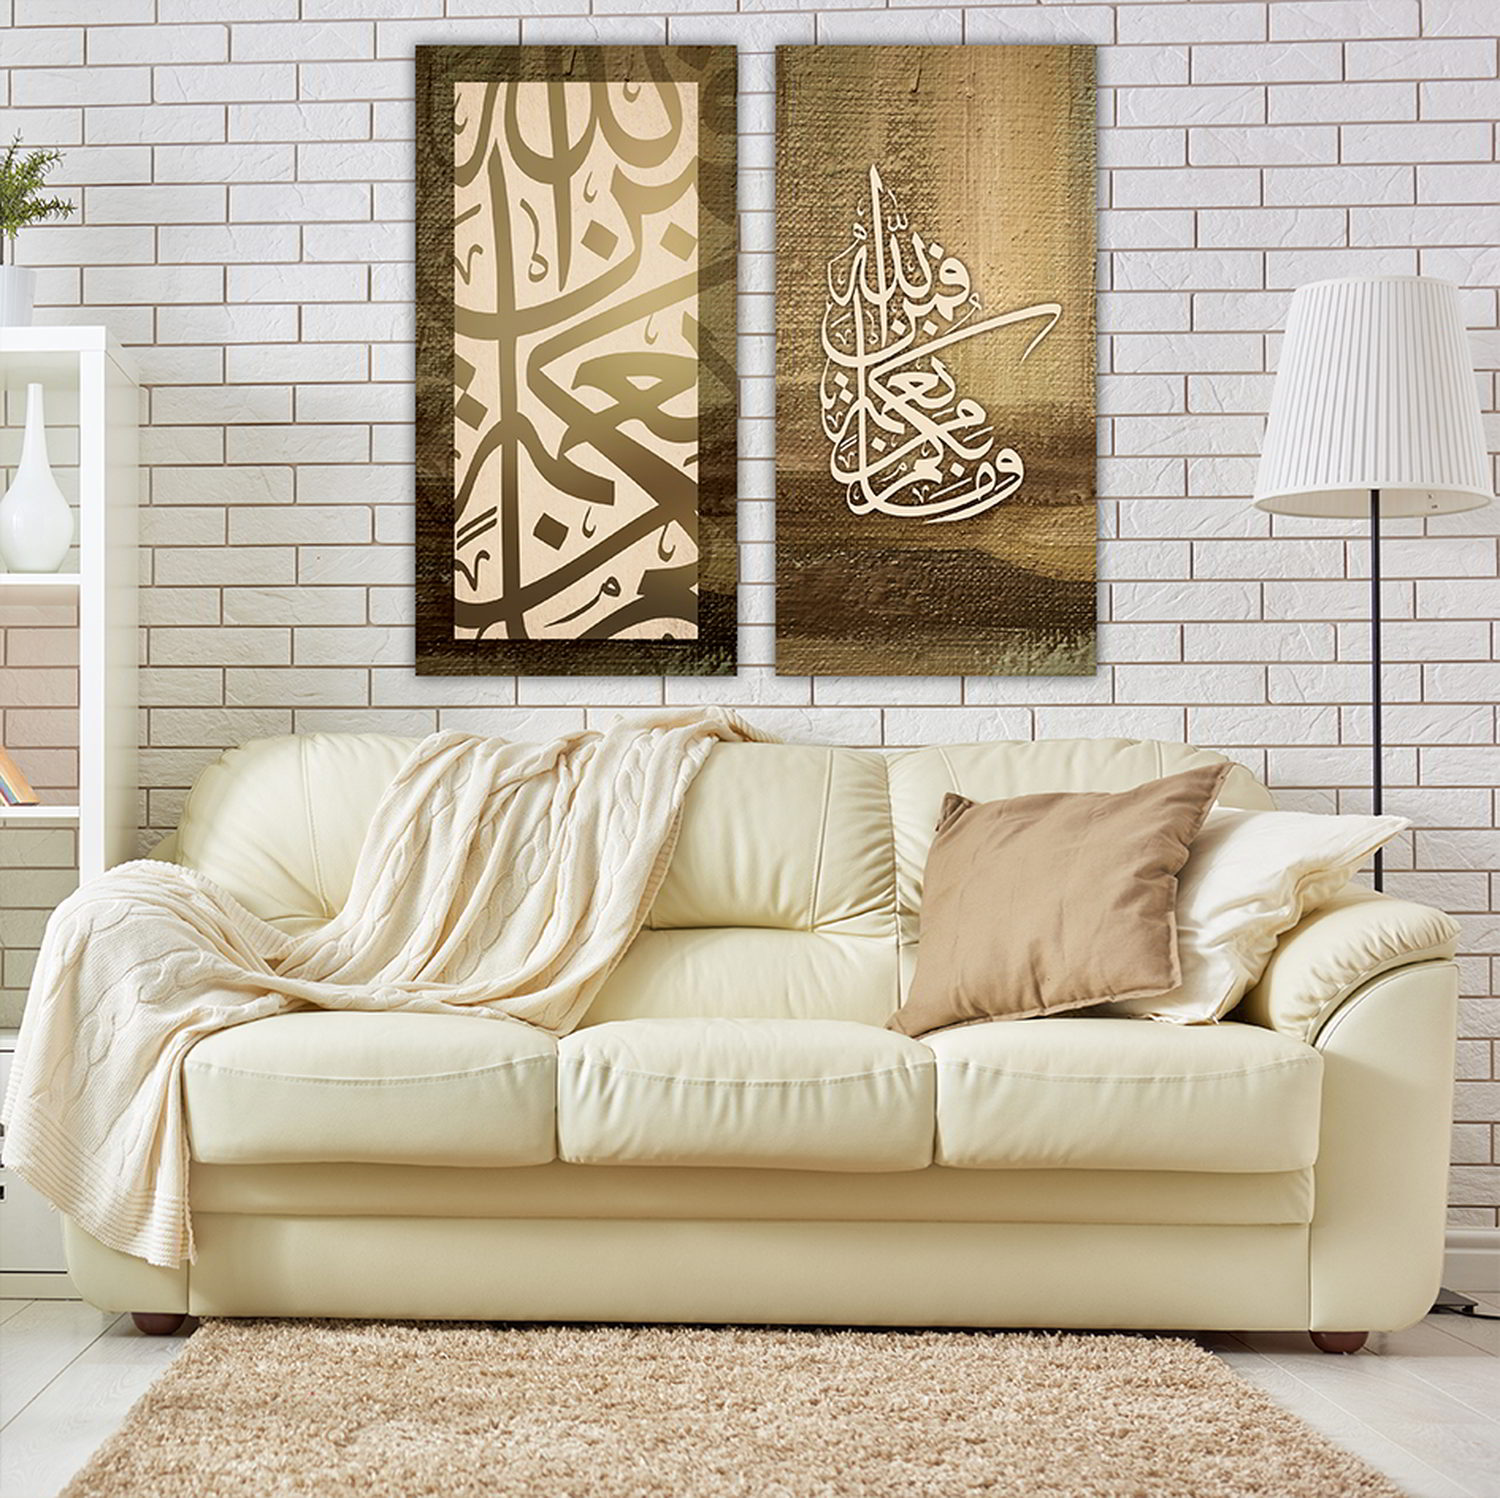 Islamic Decorative Arabic Calligraphy Wall Art Dxf File Free Download 3axis Co